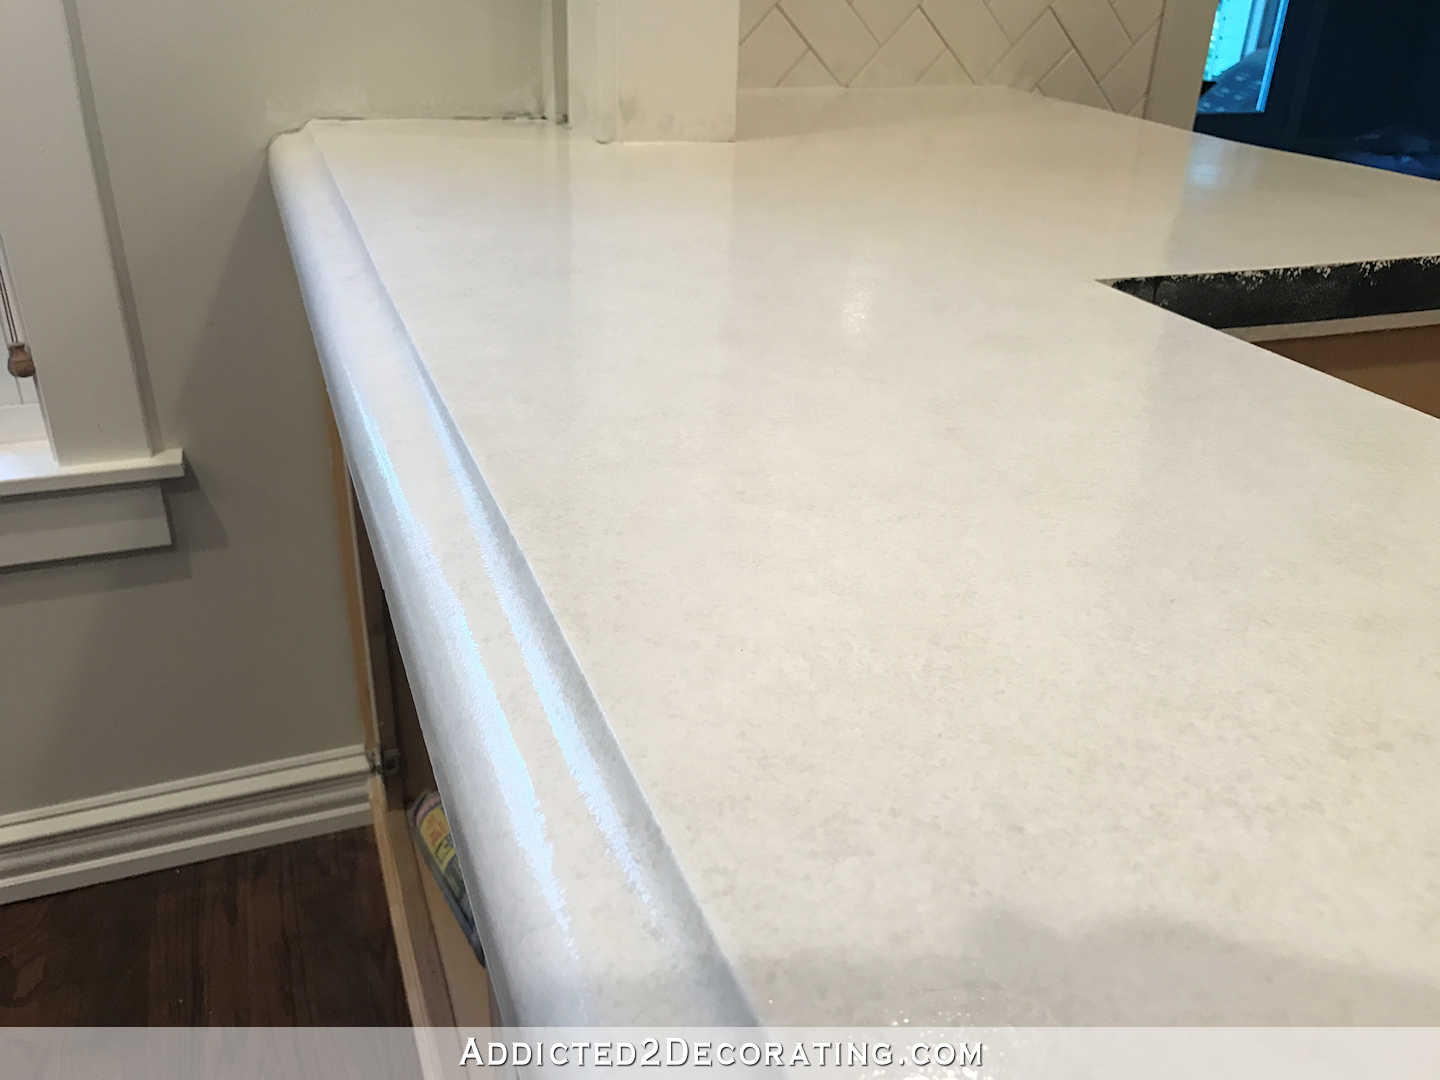 refinishing concrete countertops - 43 - finished counteretop with the clear coat polyurea sealer - peninsula close up